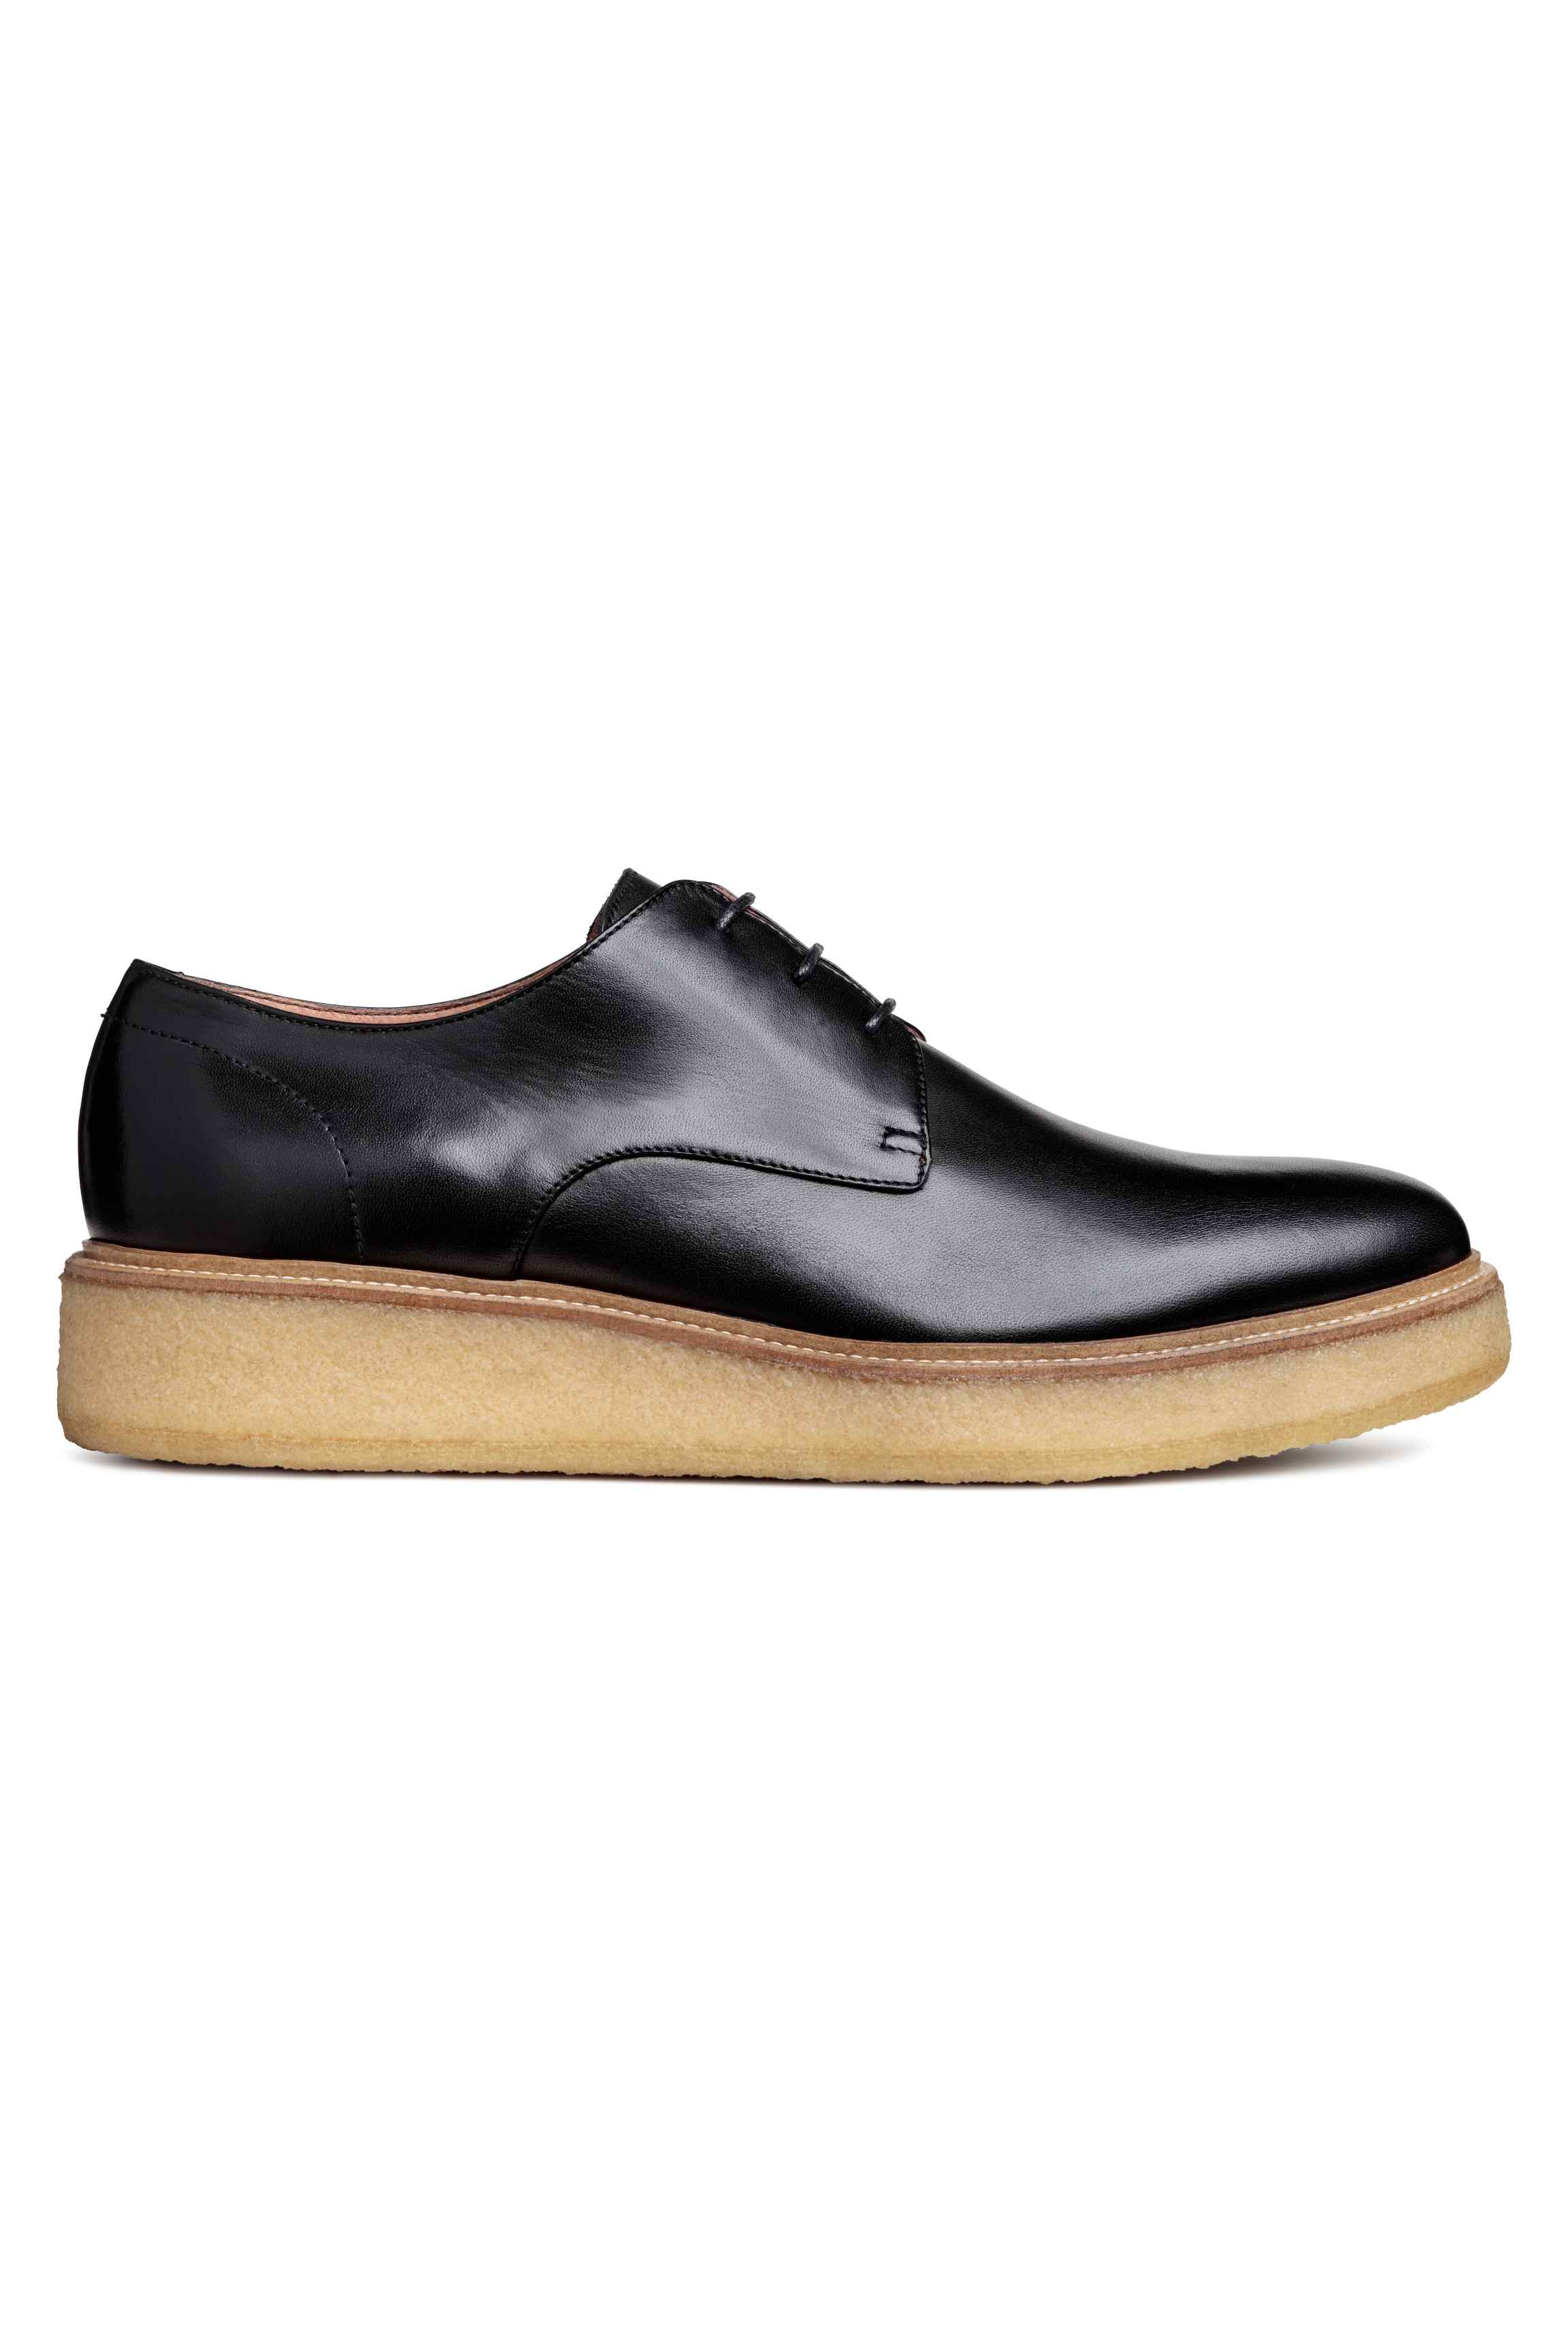 Wedge-Heeled Derby Shoes, £59.99 ( H&M )